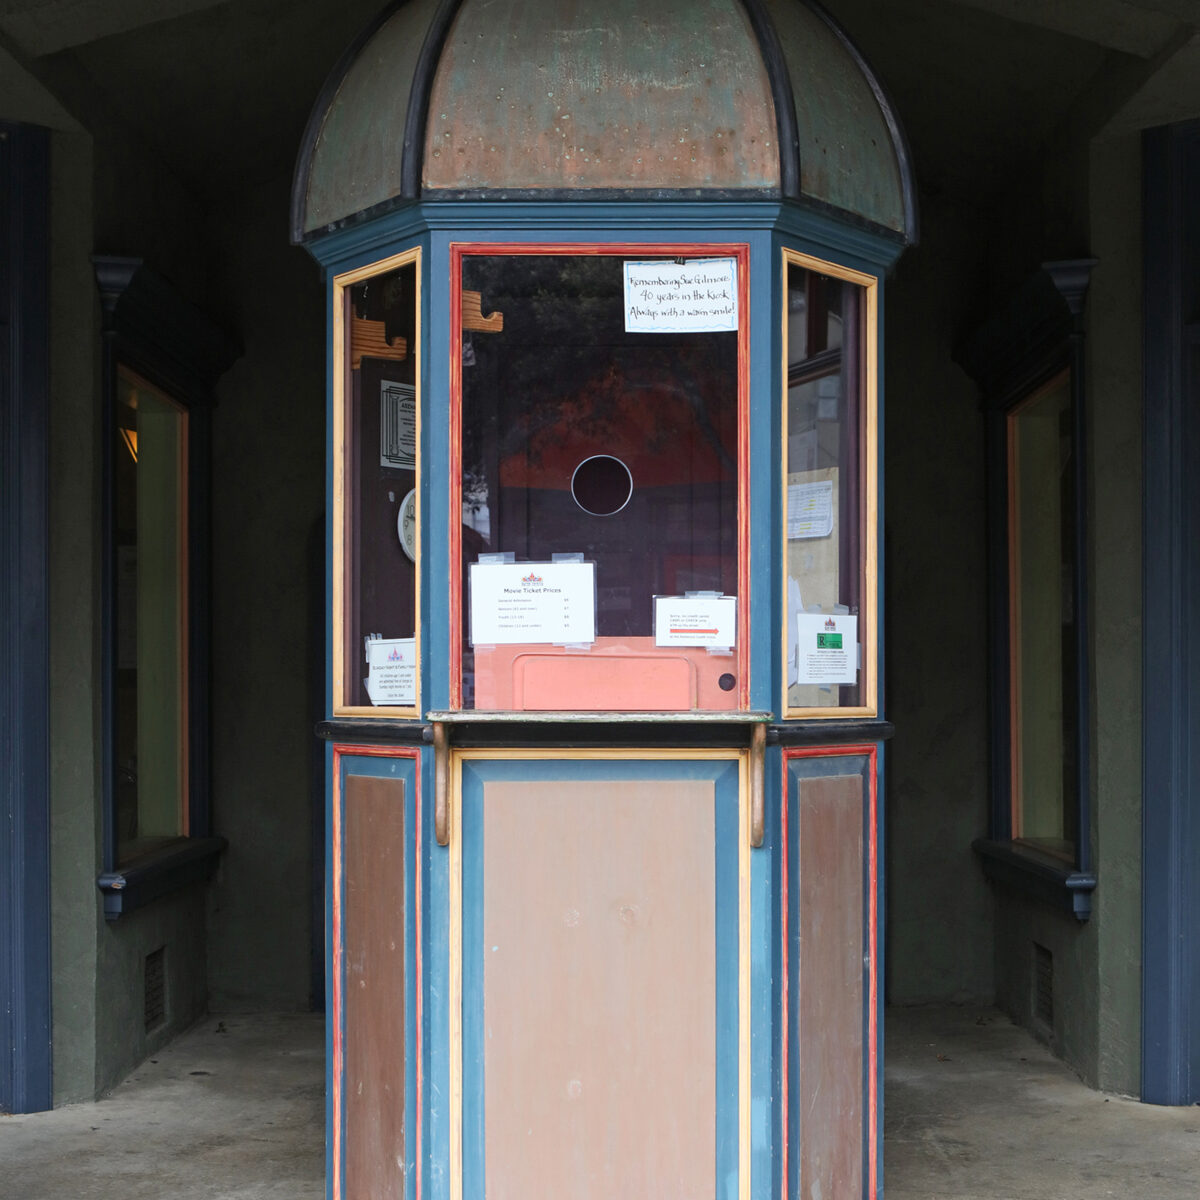 Arena Theater Kiosk